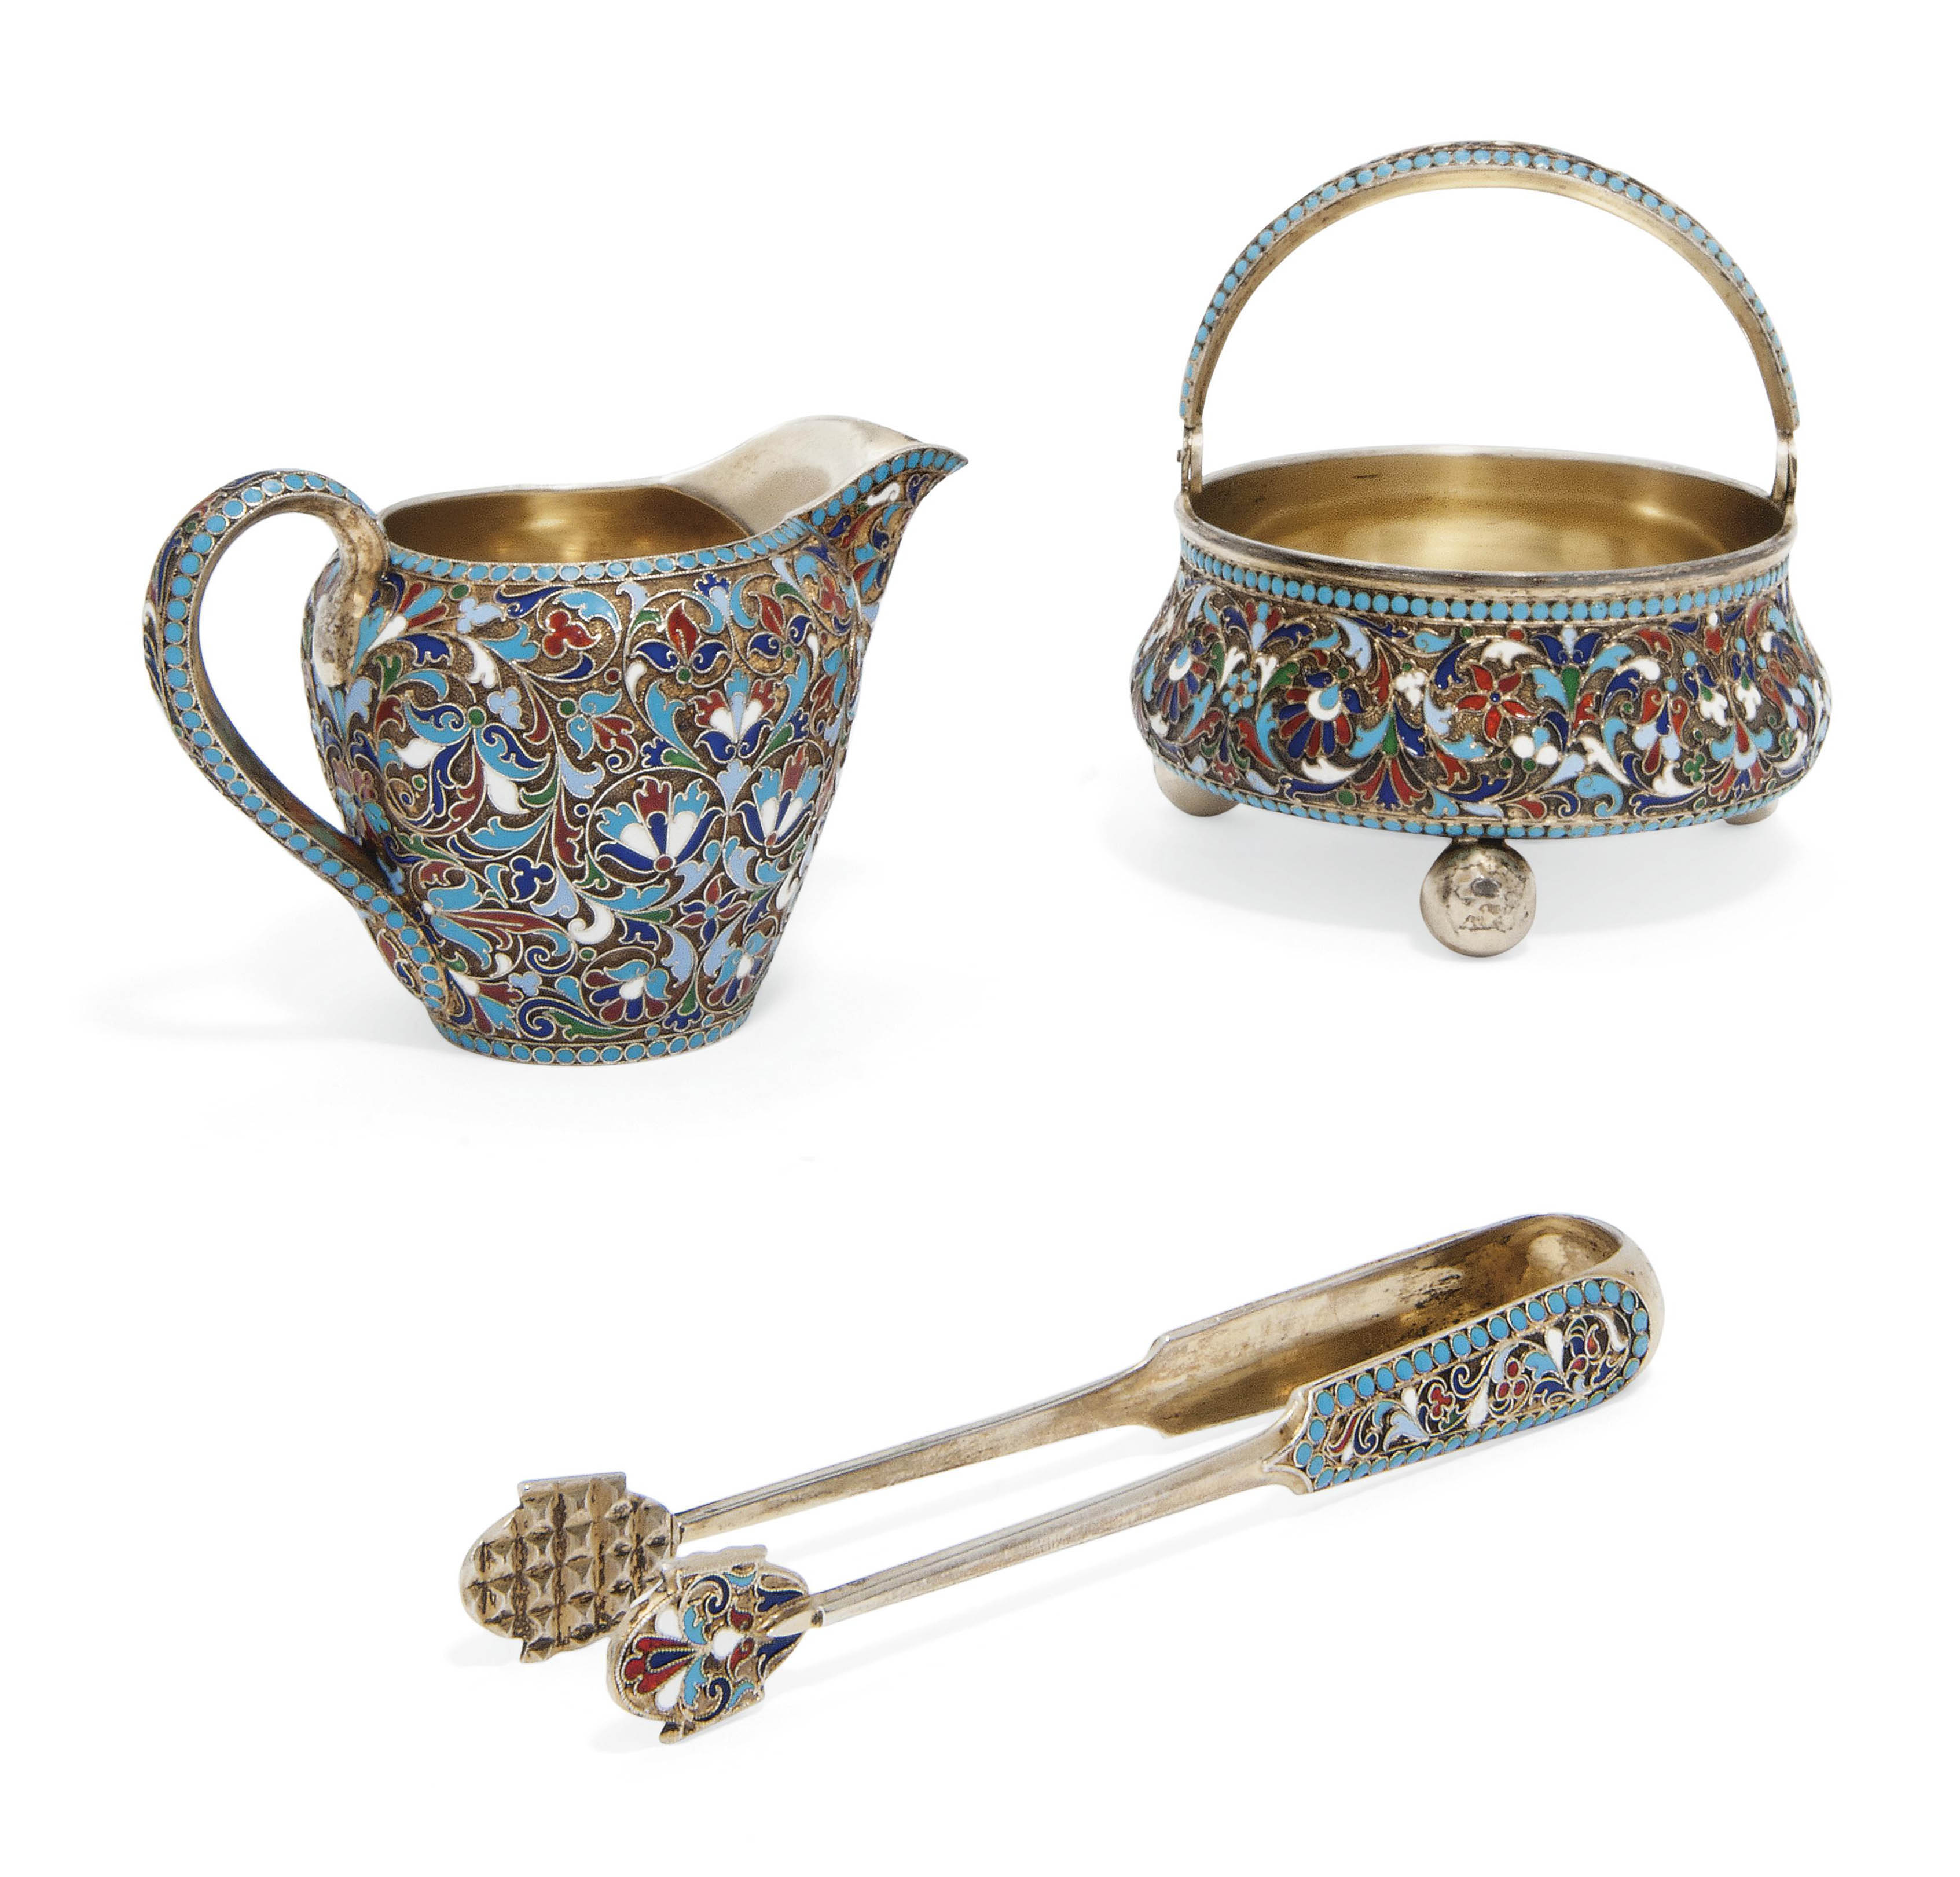 A RUSSIAN SILVER-GILT AND CLOISONNE ENAMEL CREAM JUG